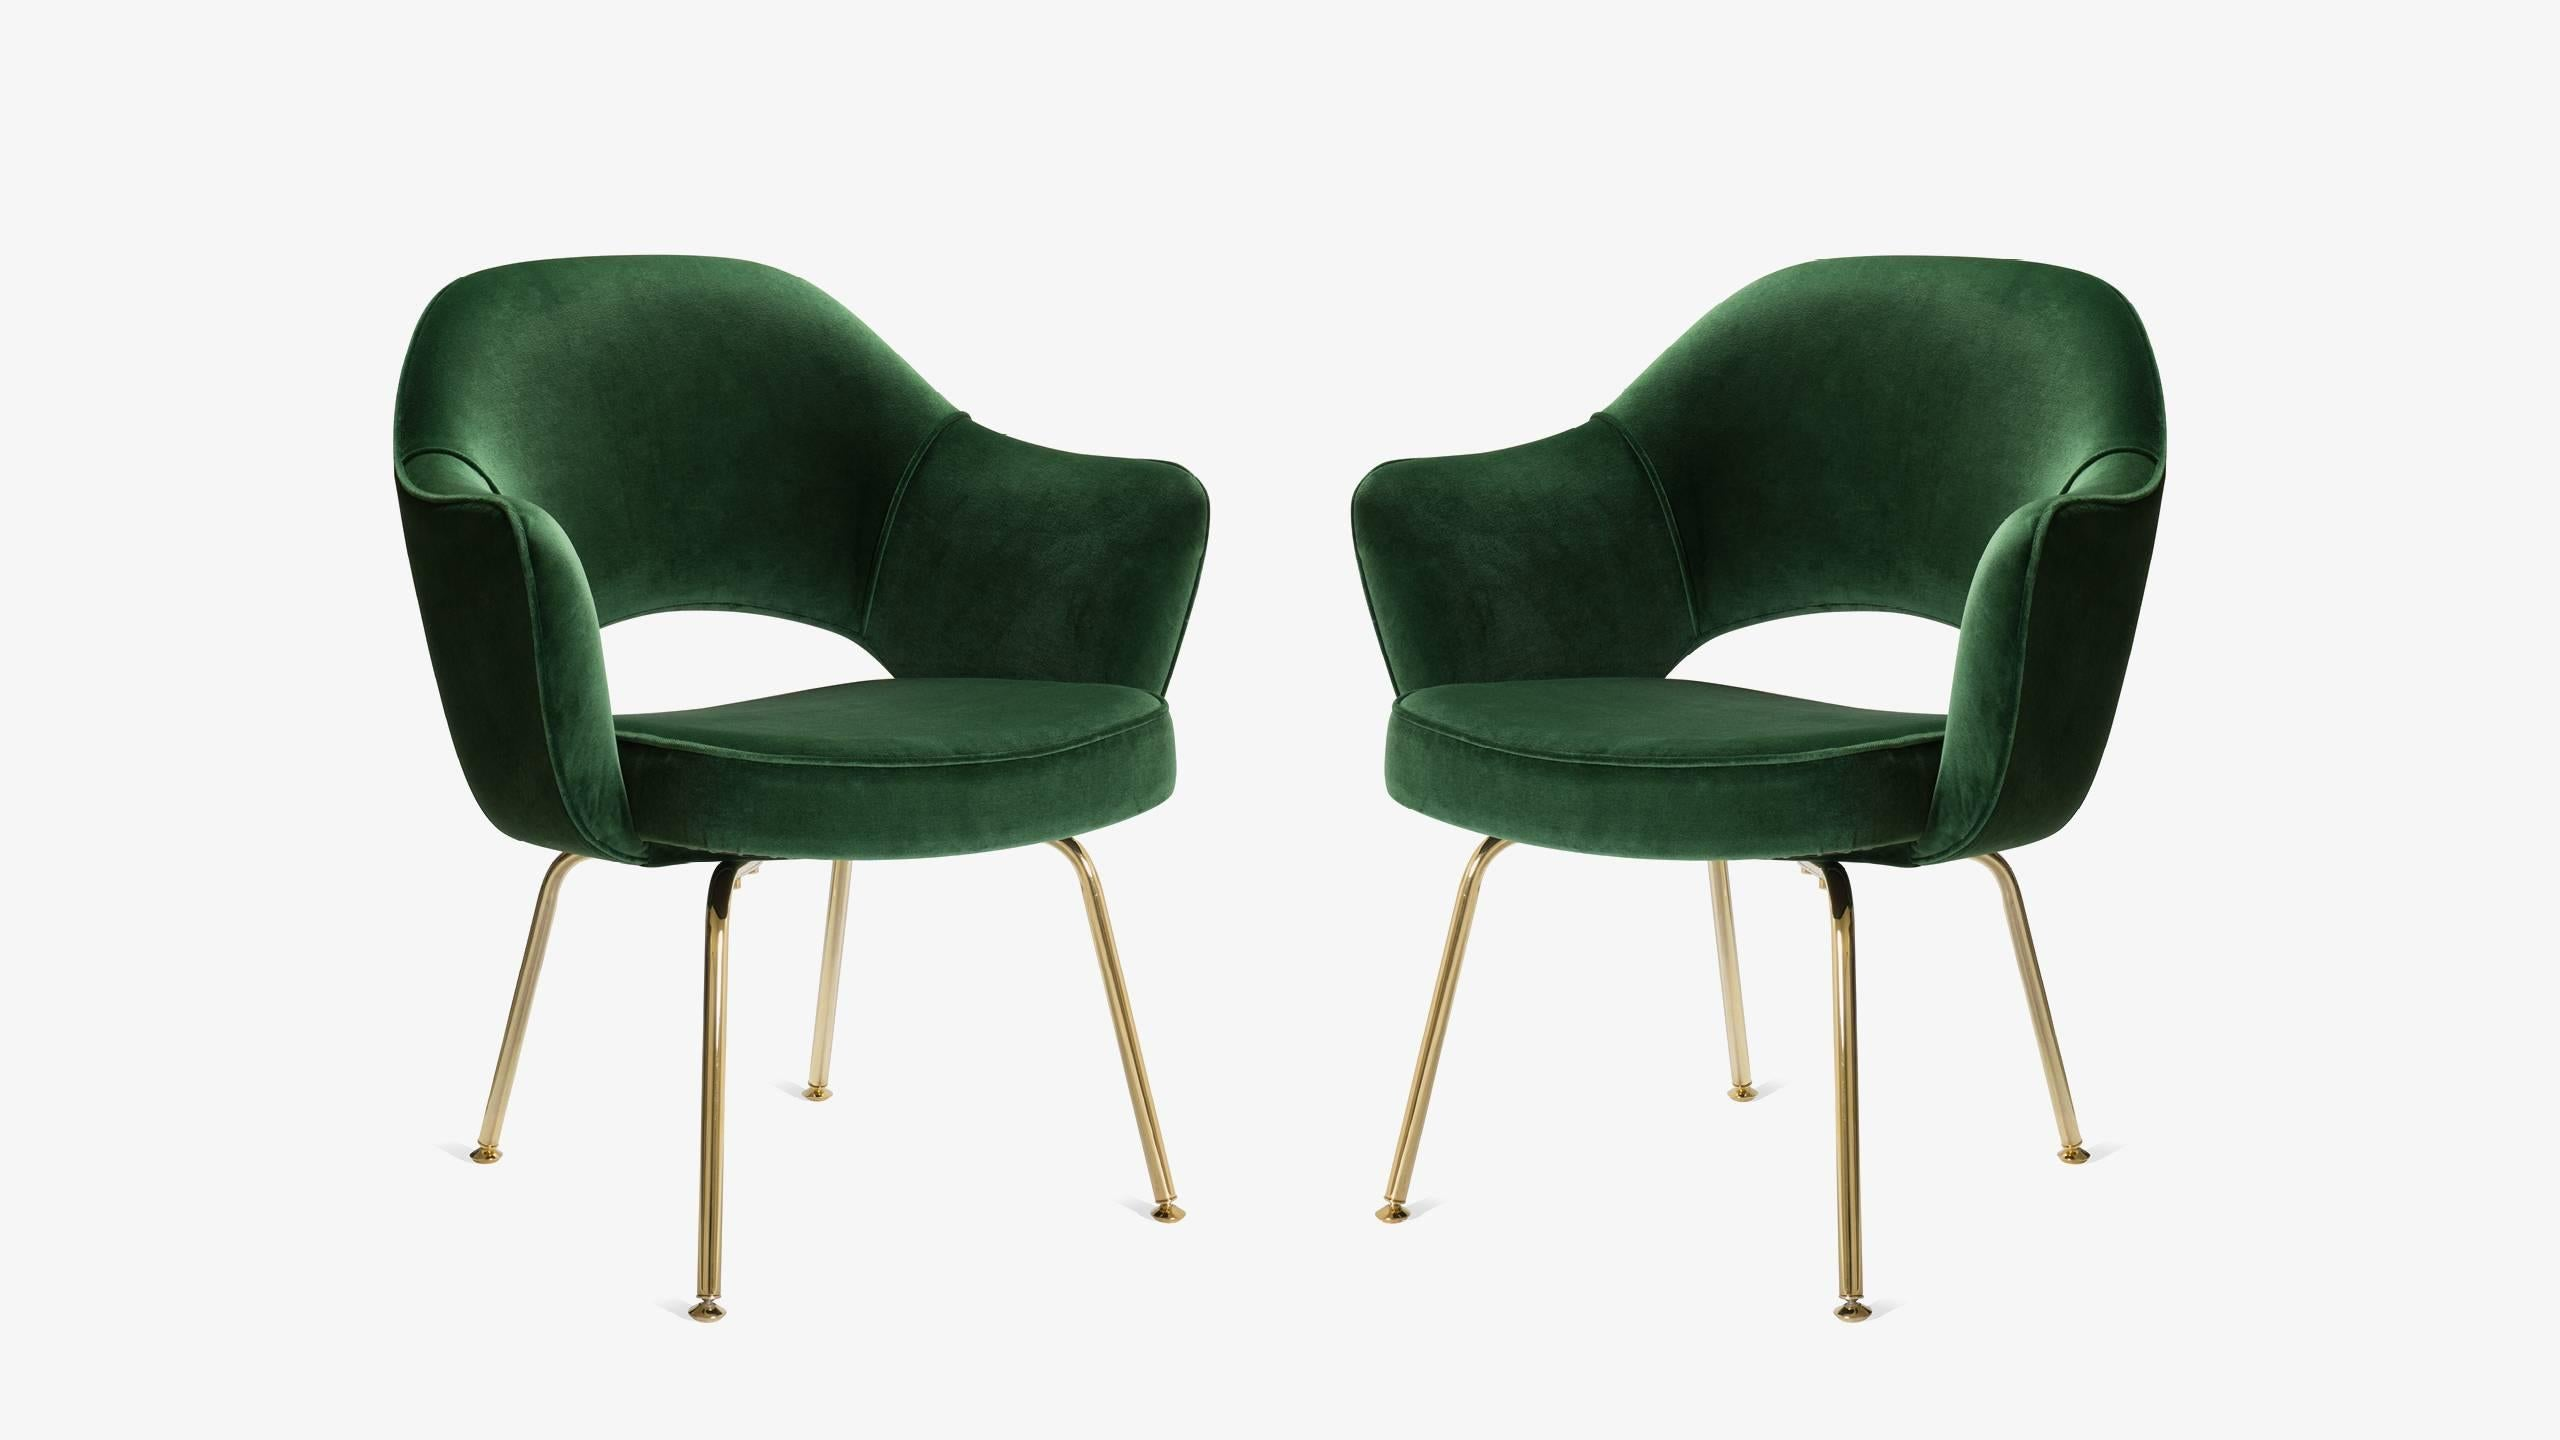 Saarinen Executive Arm Chairs In Emerald Velvet, 24k Gold Edition, Set Of 6  For Sale At 1stdibs